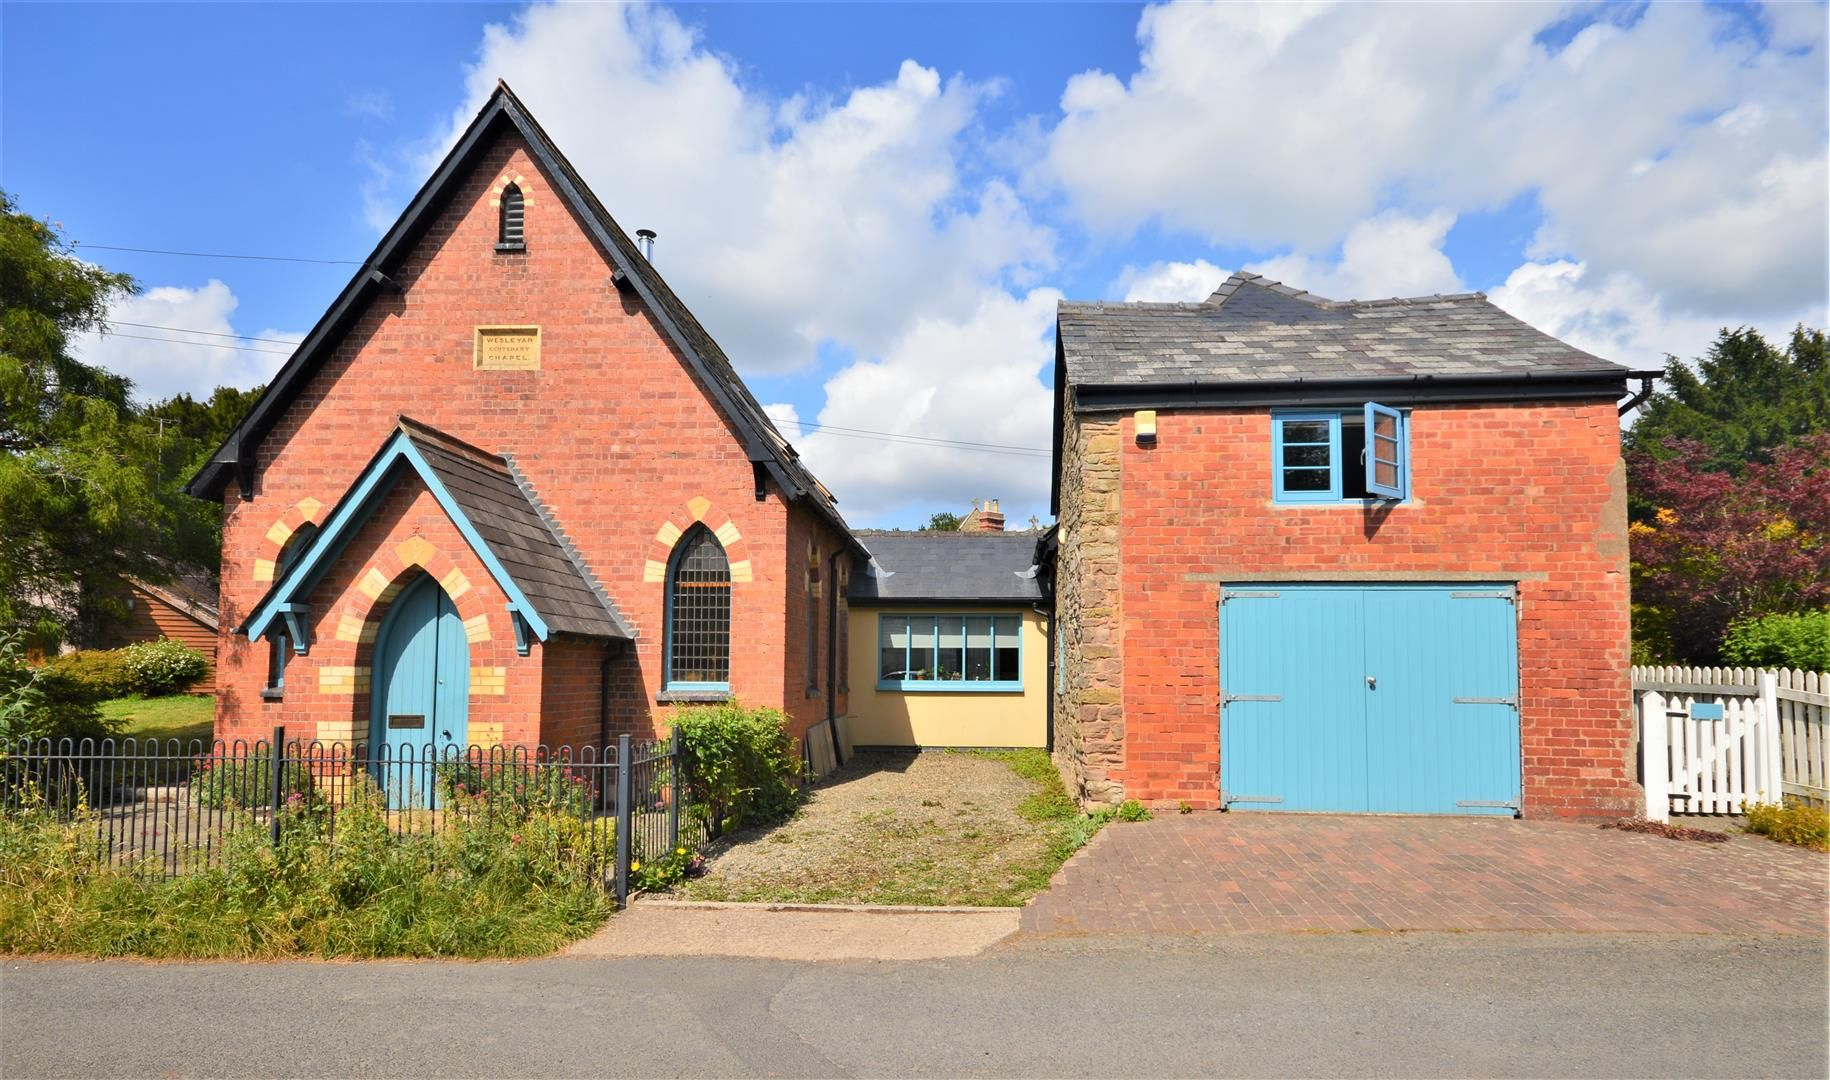 3 bed detached for sale in Yarpole, HR6